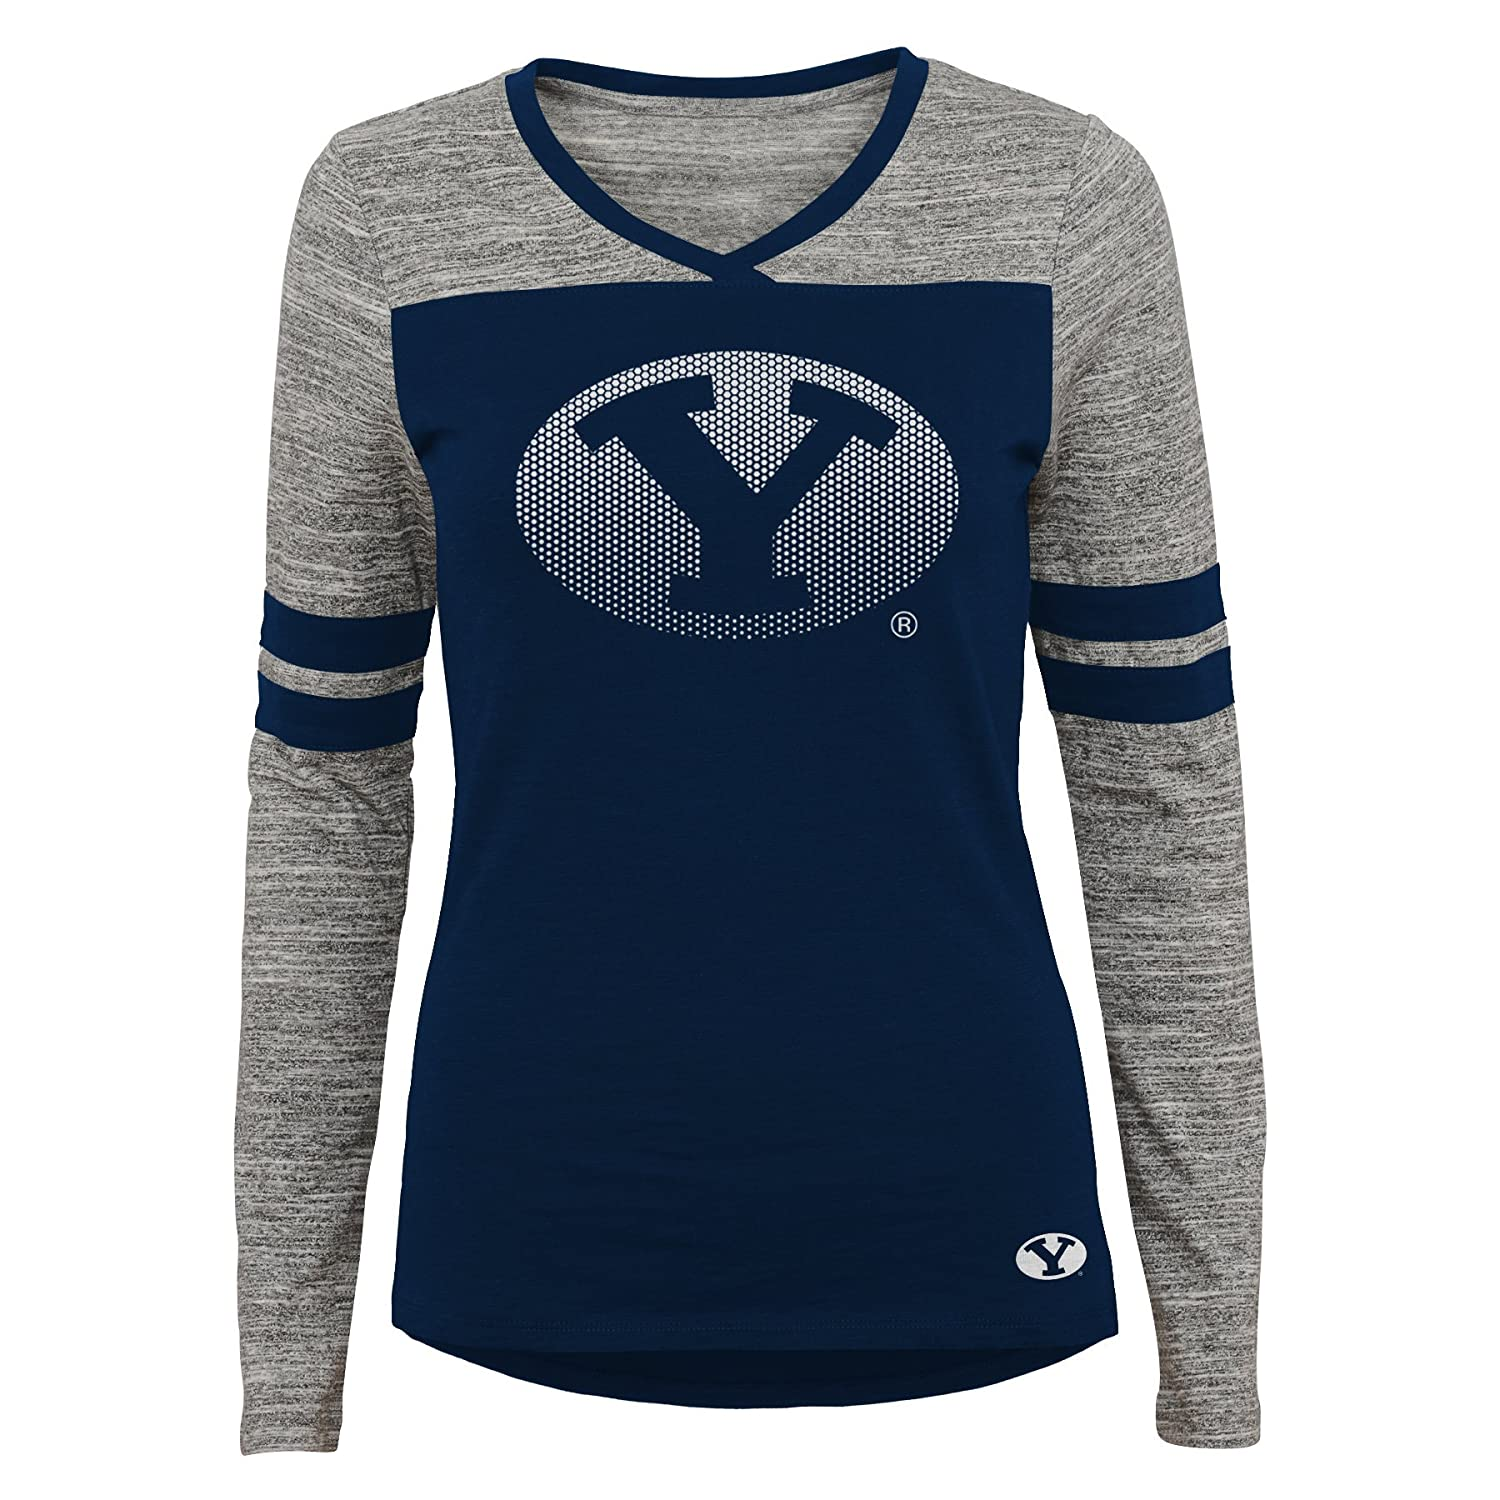 NCAA Byu Cougars Juniors Outerstuff Secret Fan Long Sleeve Football Tee 3-5 Team Color Small